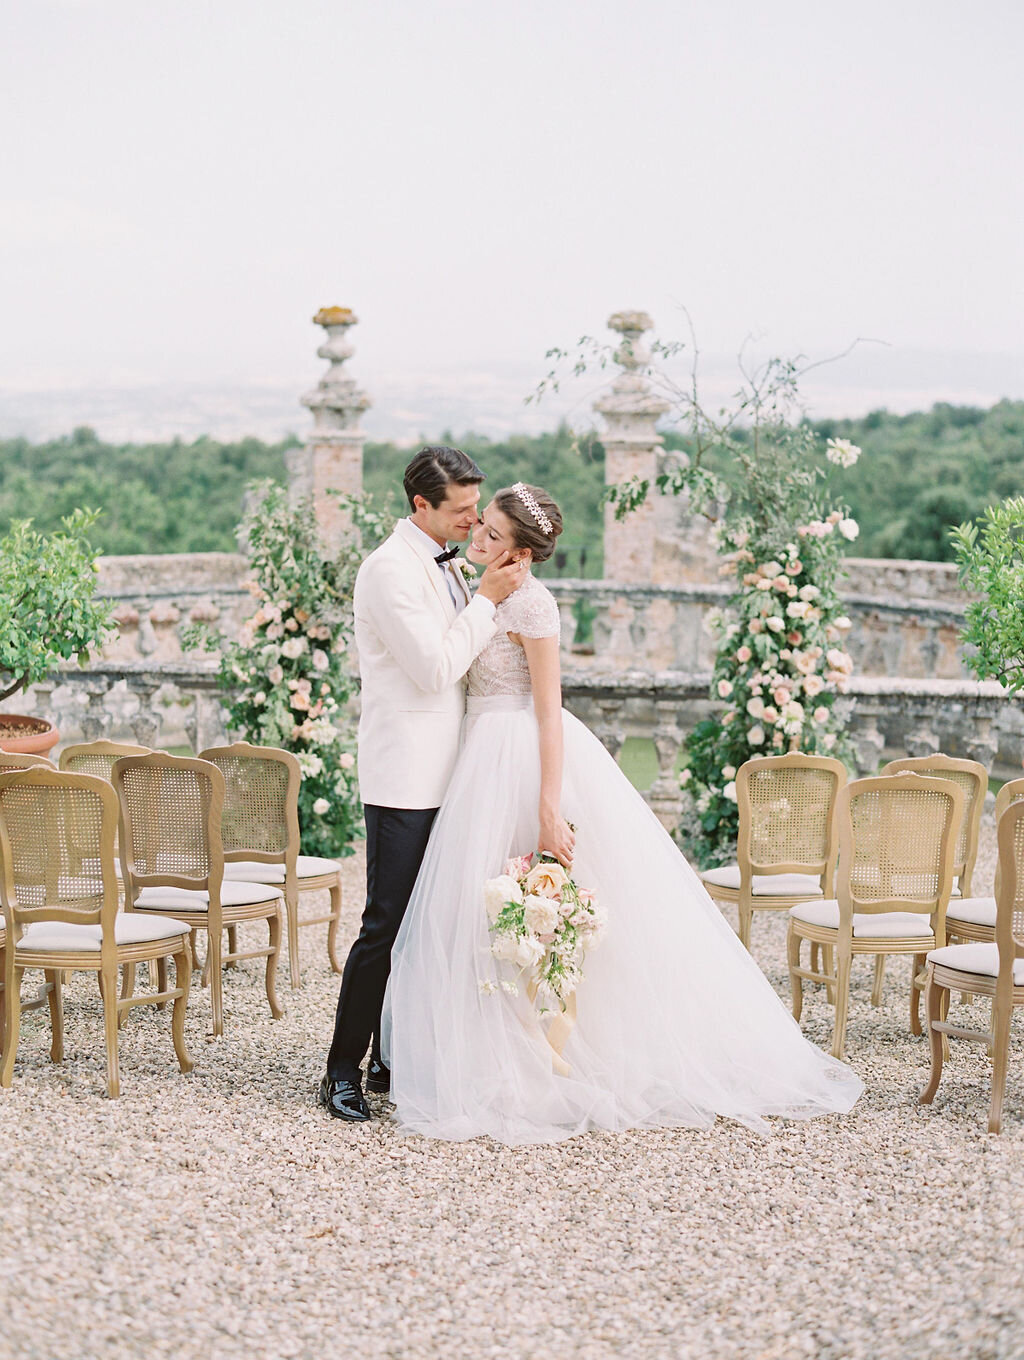 Trine_Juel_hair_and_makeupartist_wedding_Italy_Castello_Di_CelsaQuicksallPhotography_CastelloDiCelsa0263